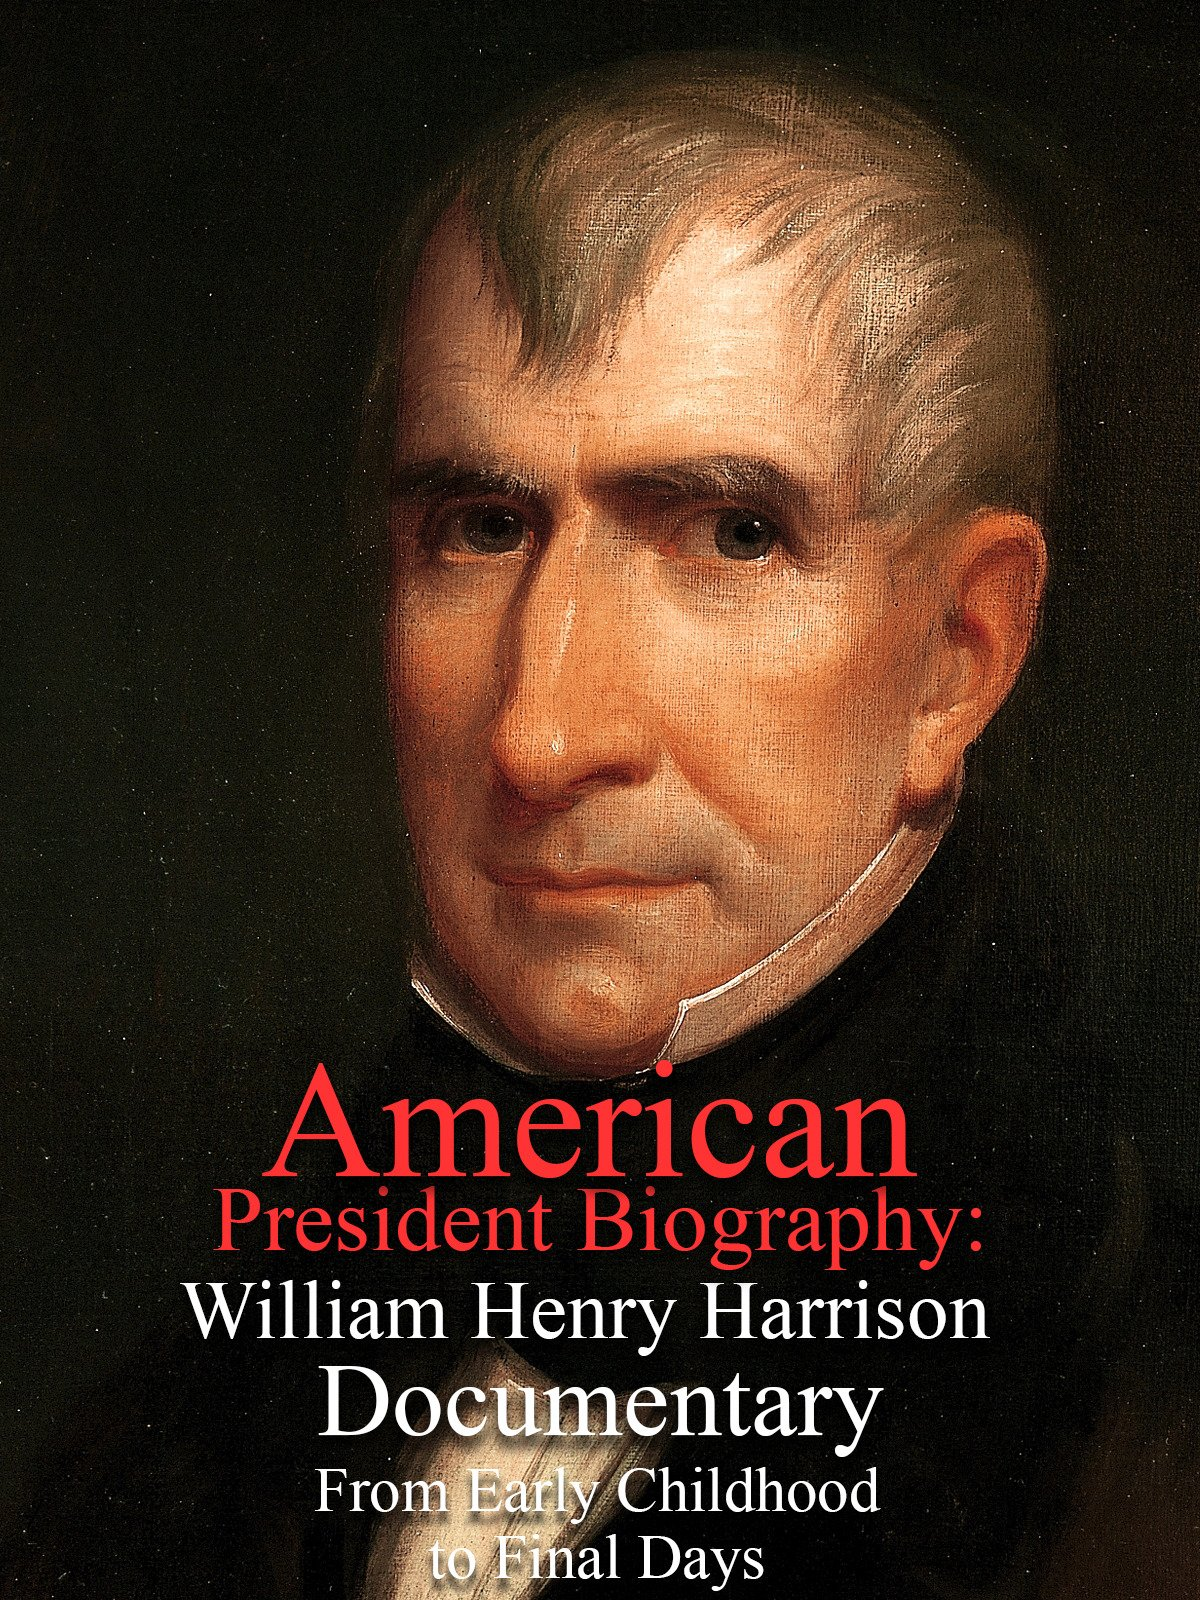 American President Biography: William Henry Harrison Documentary From Early Childhood to Final Days